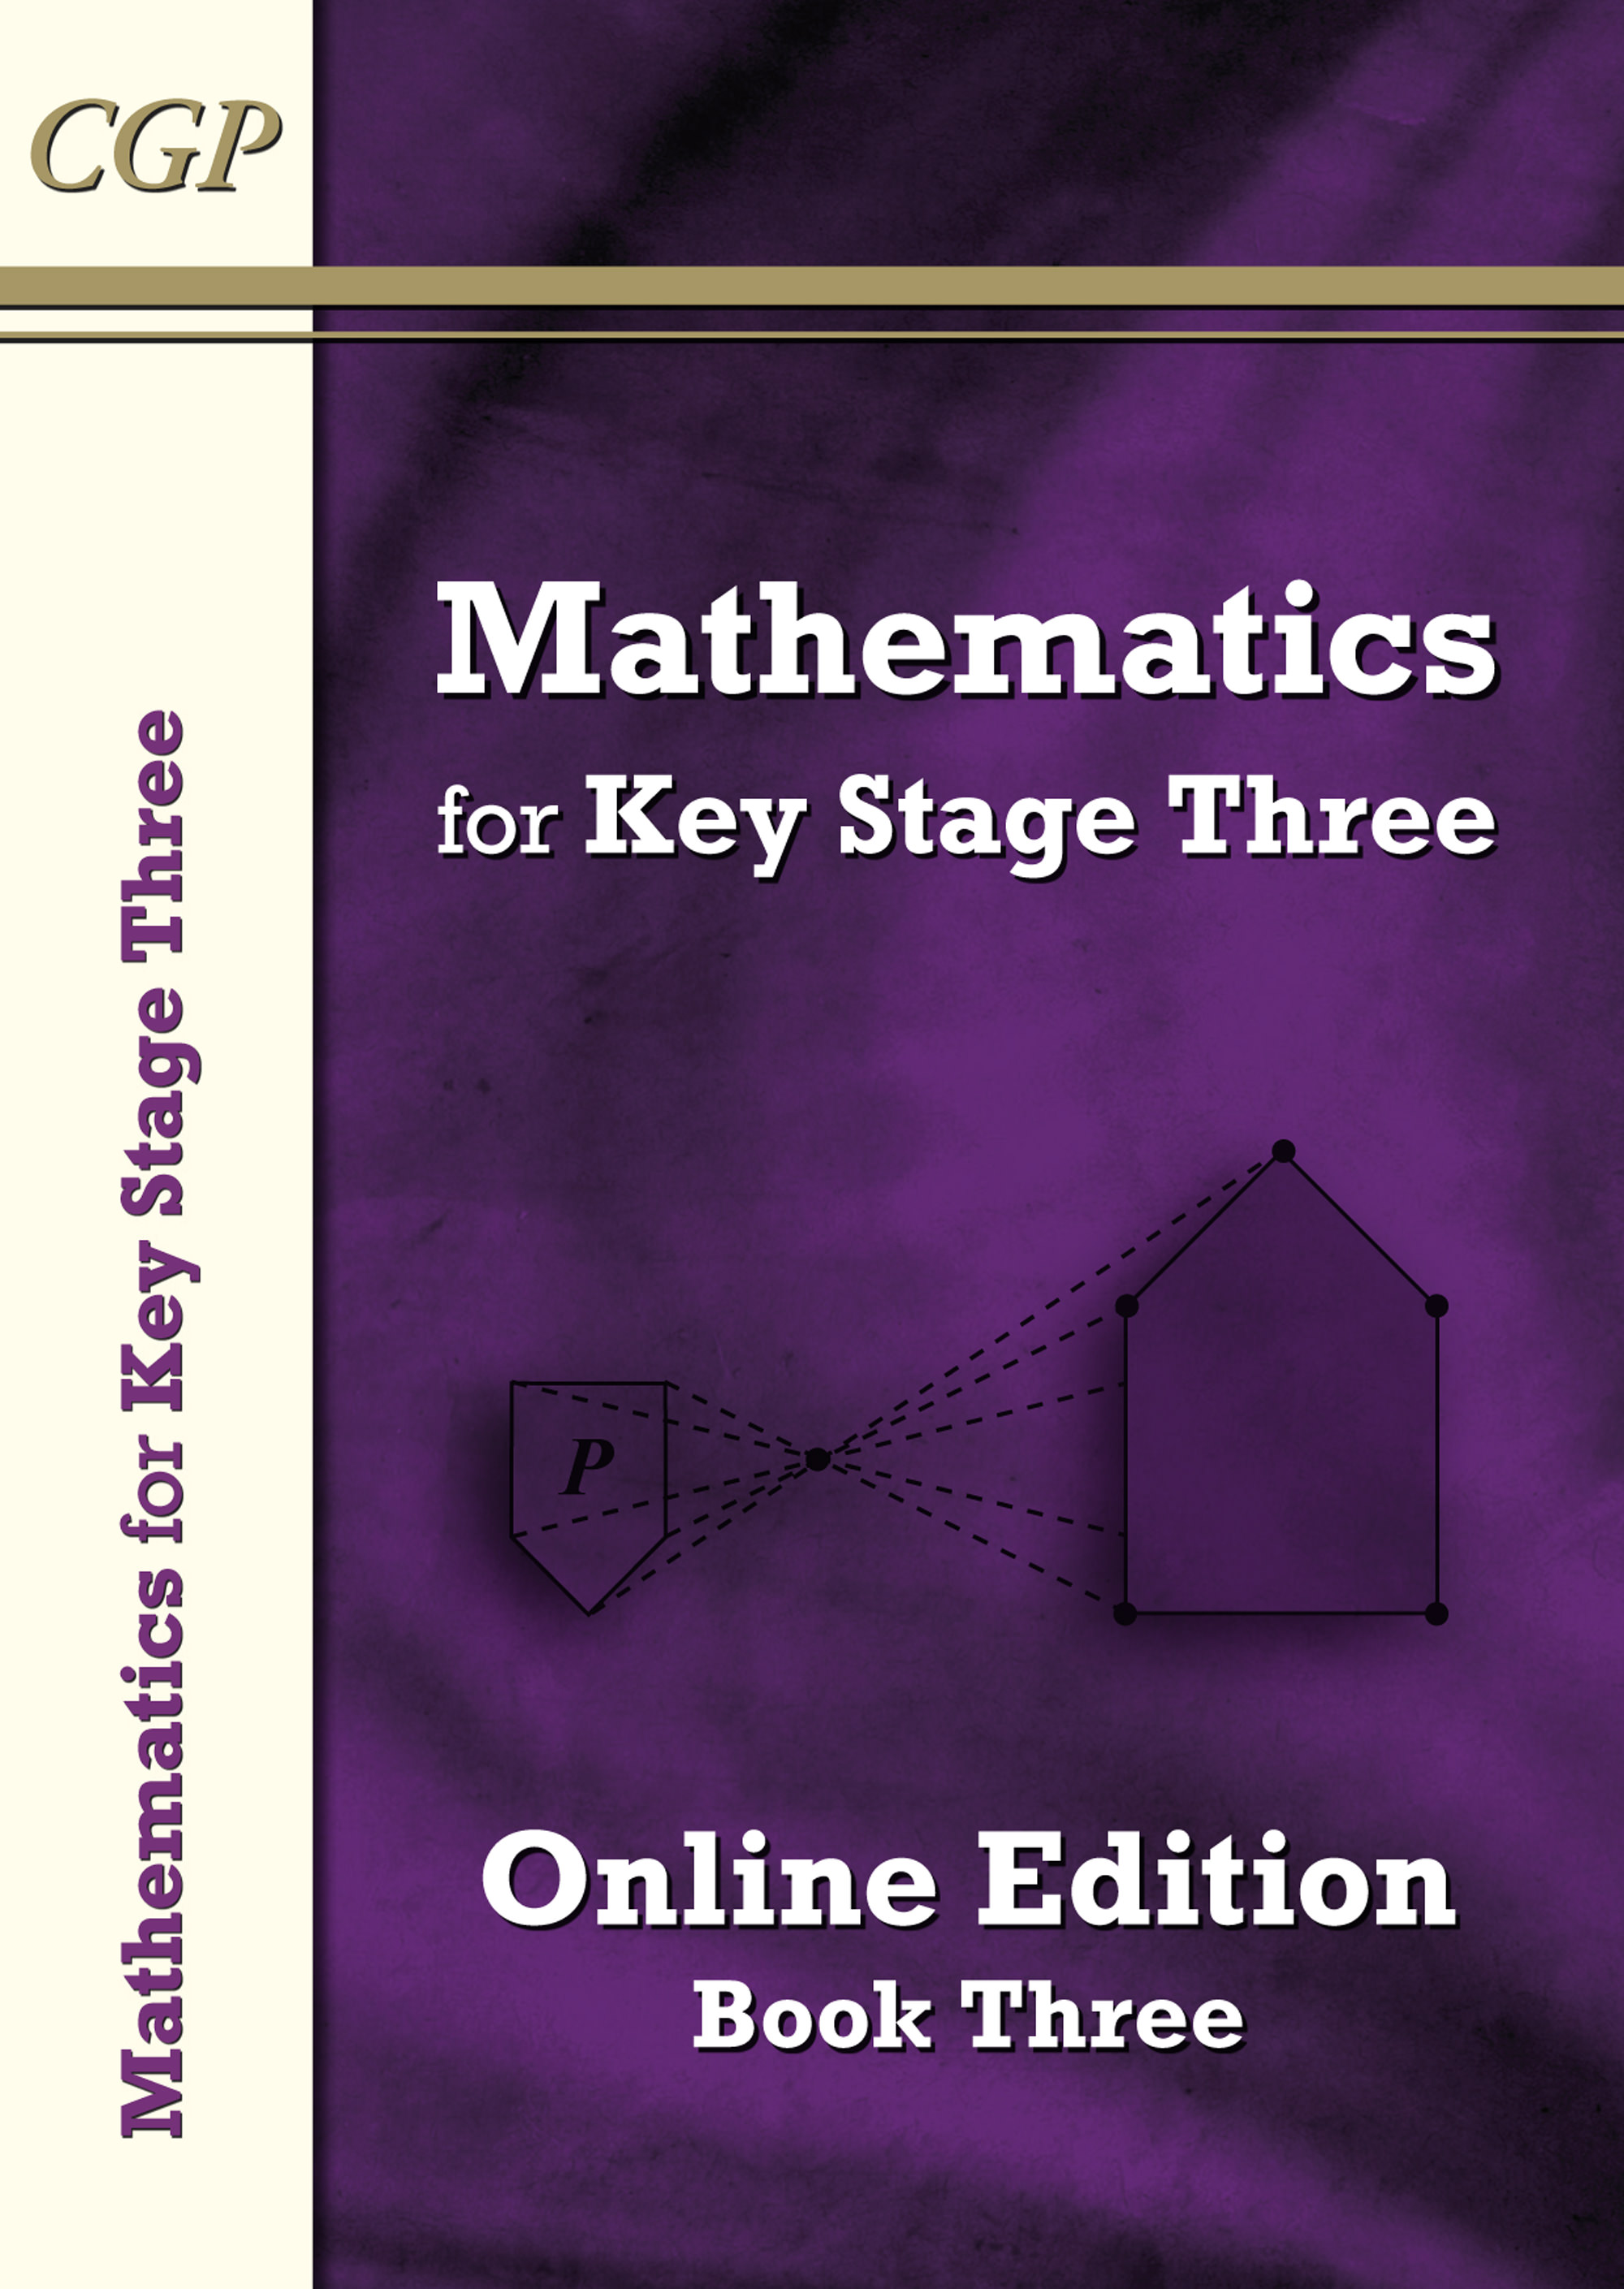 M3NN31D - KS3 Maths Textbook 3: Student Online Edition (without answers)